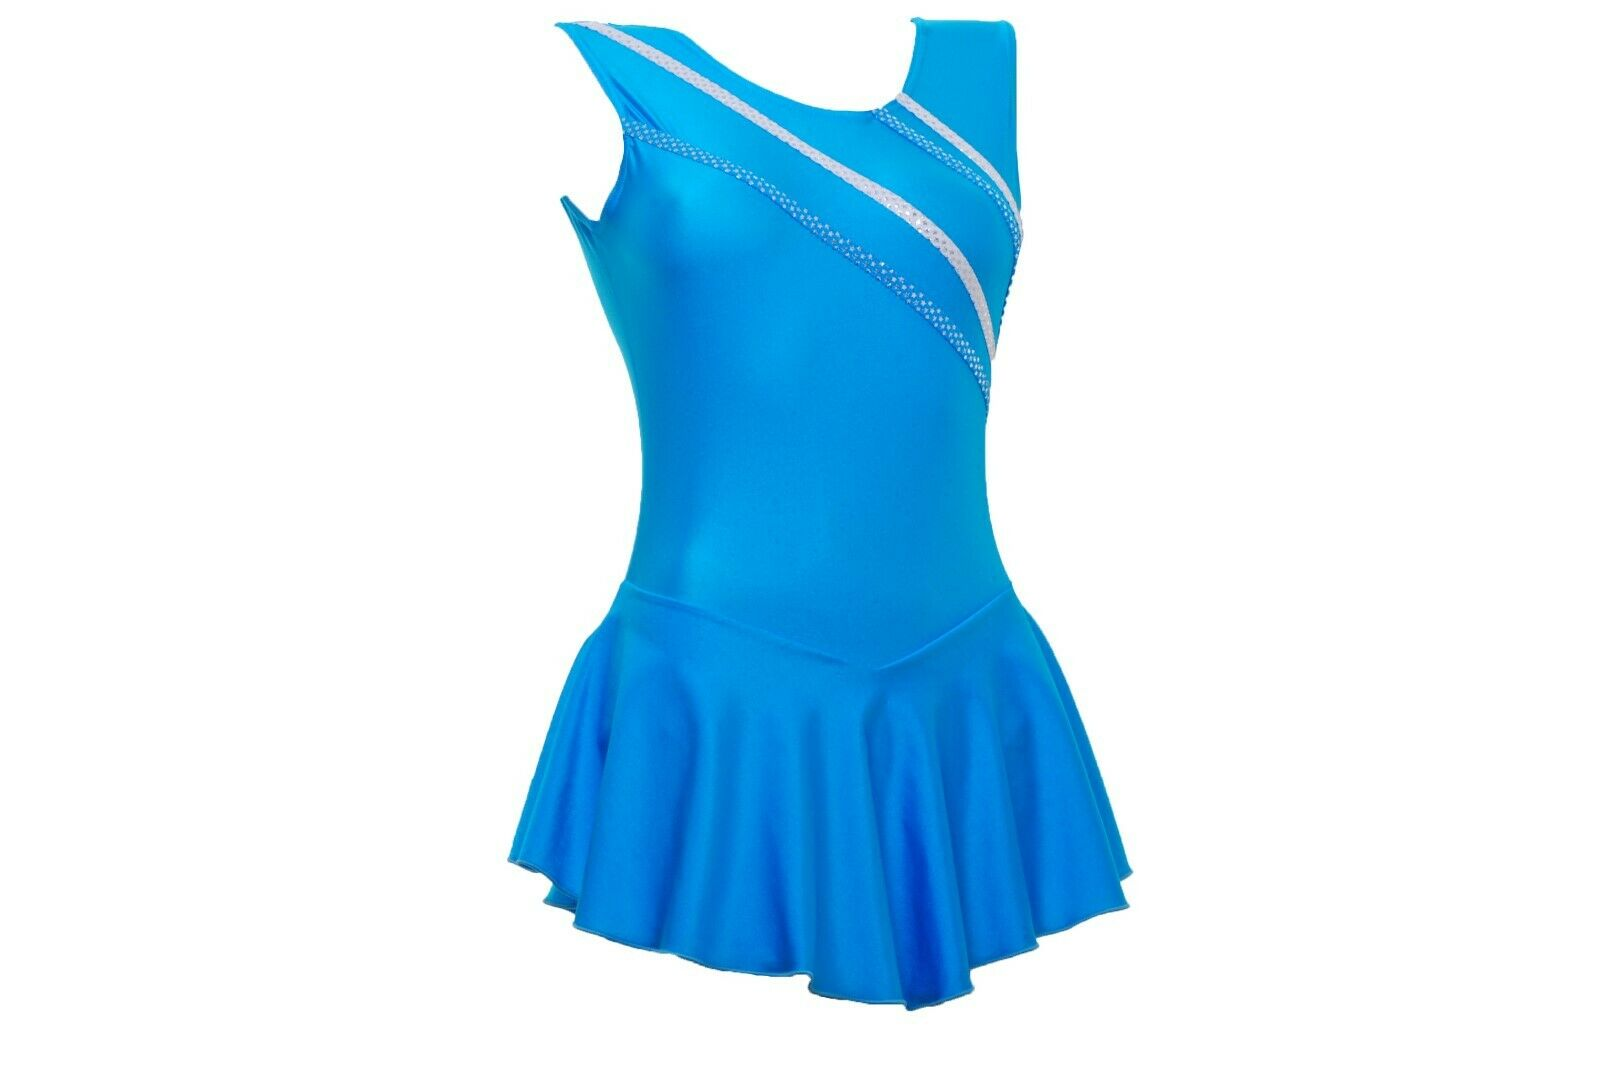 Skating Dress -Turquoise LYCRA   Metalic stripes NO SLEEVE ALL SIZES AVAILABLE